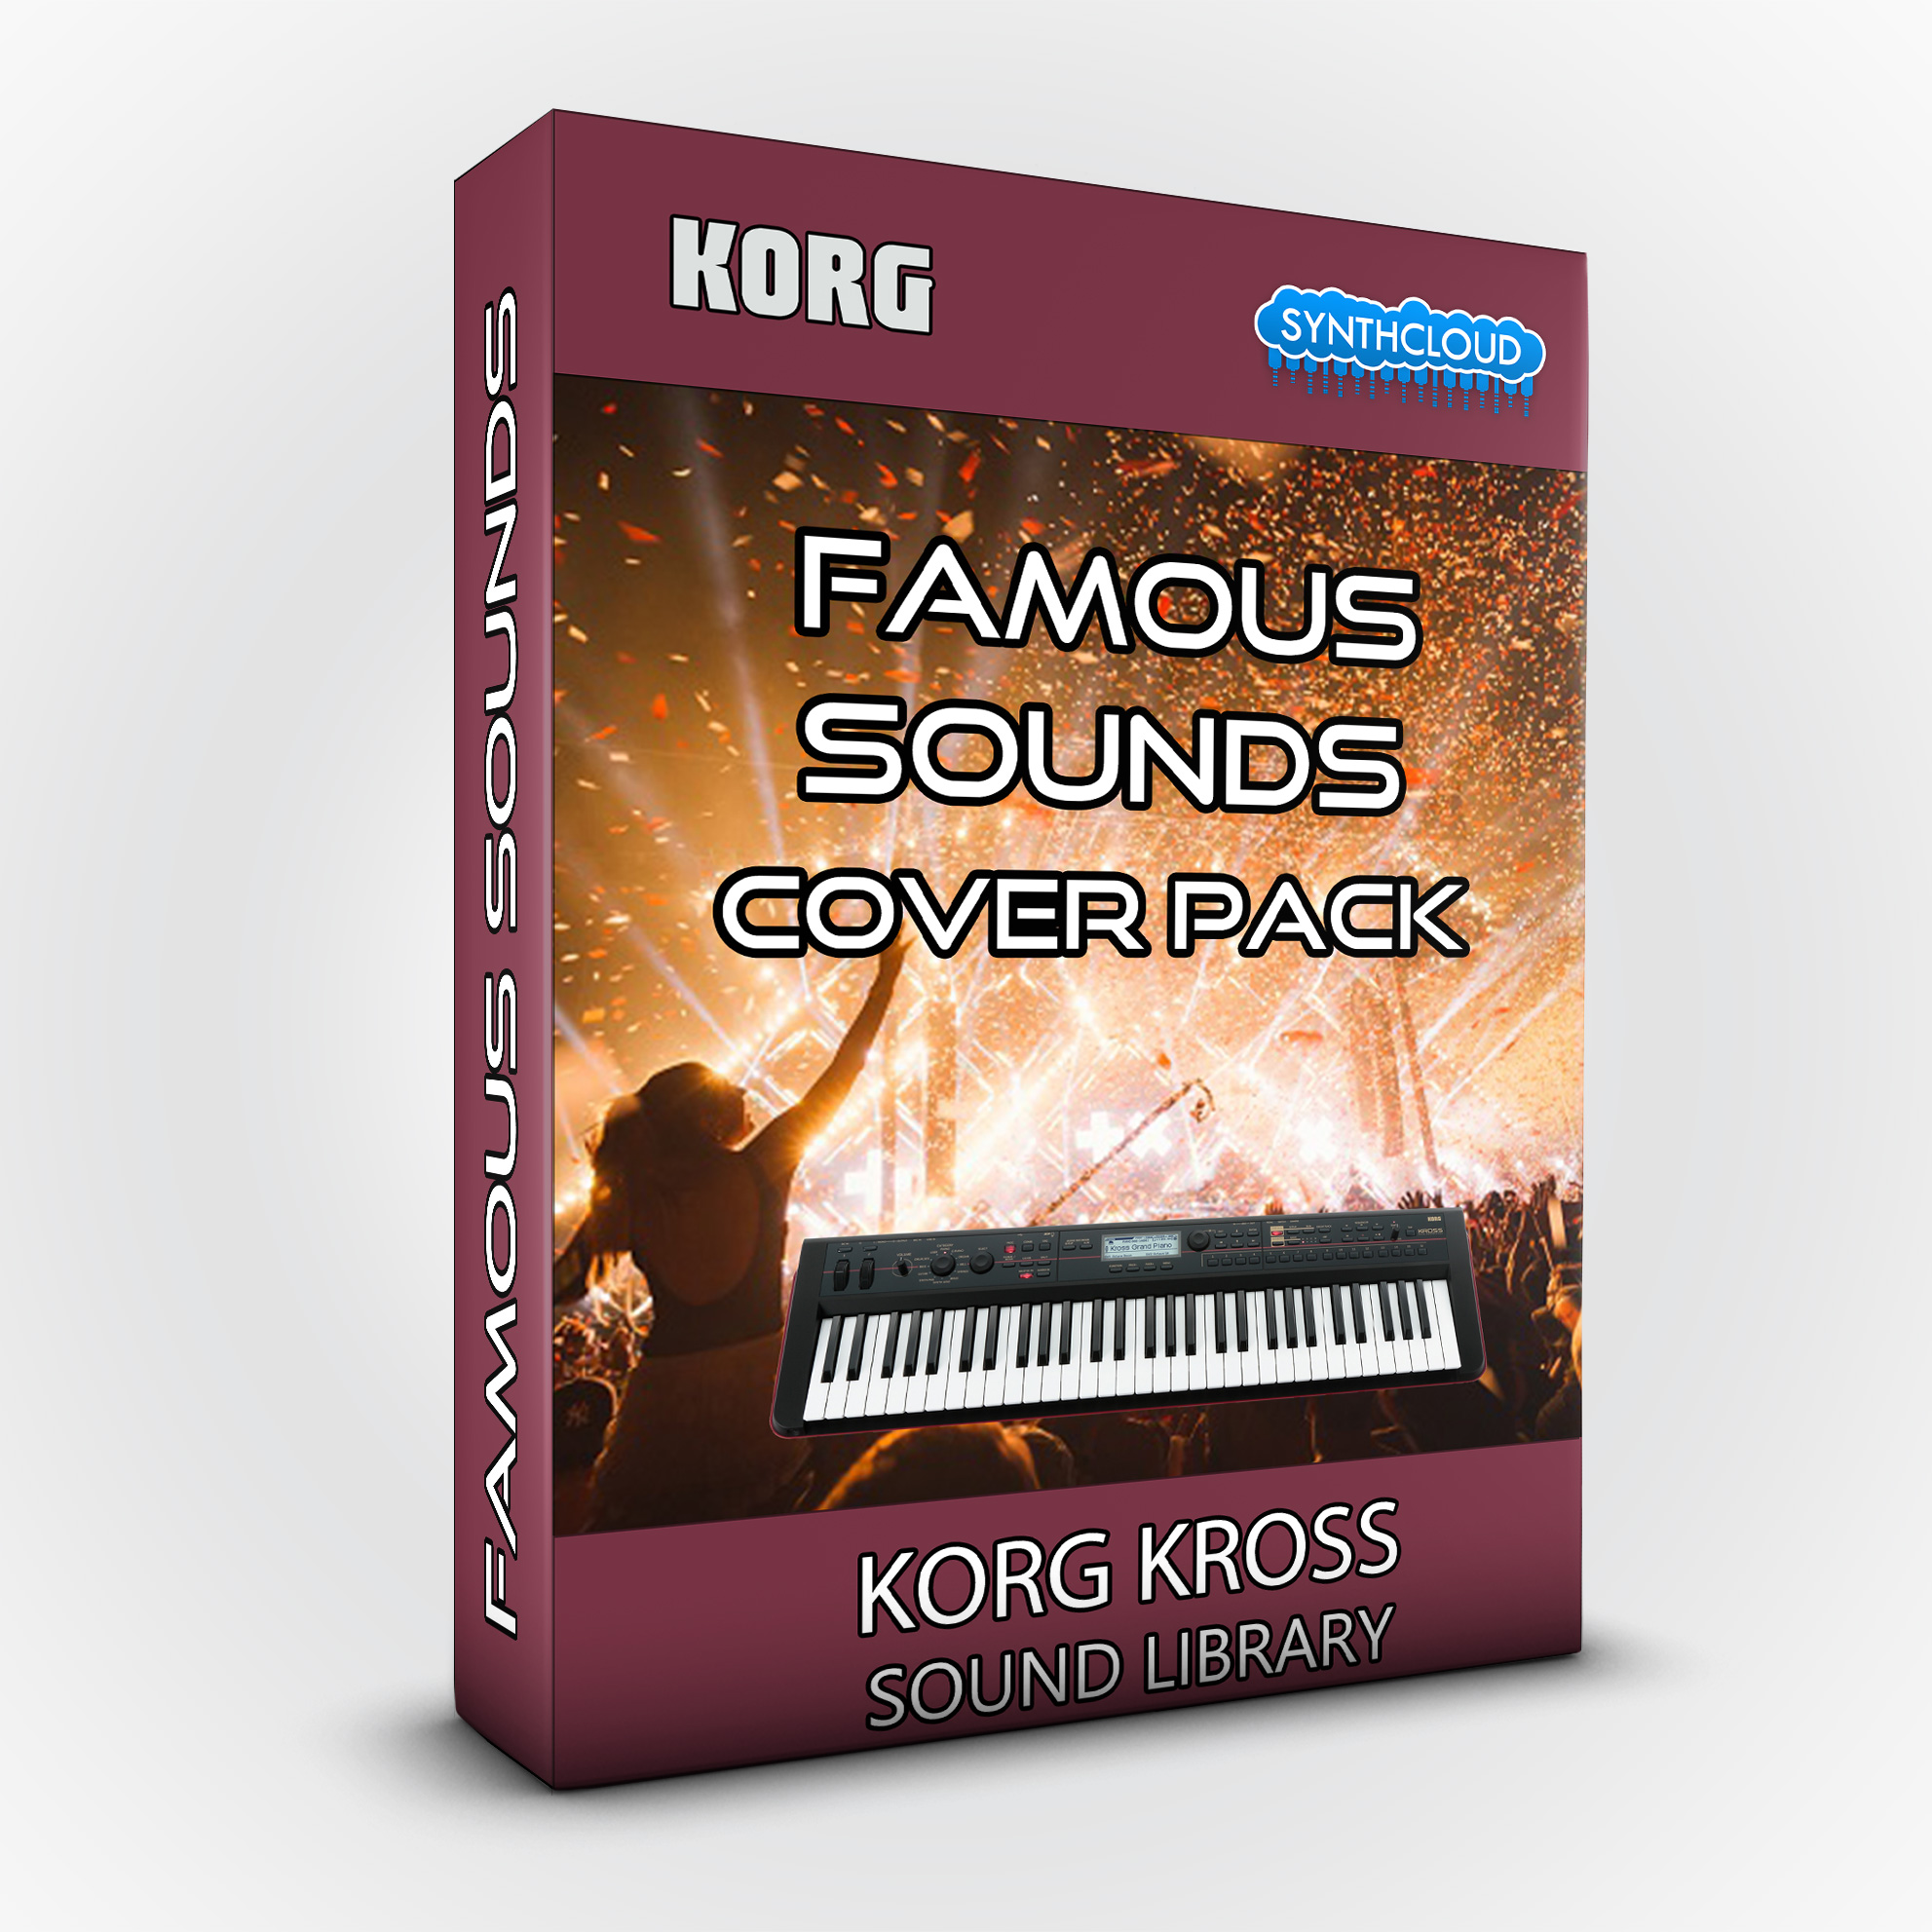 SCL152 - Famous Sounds Cover Pack - Korg Kross